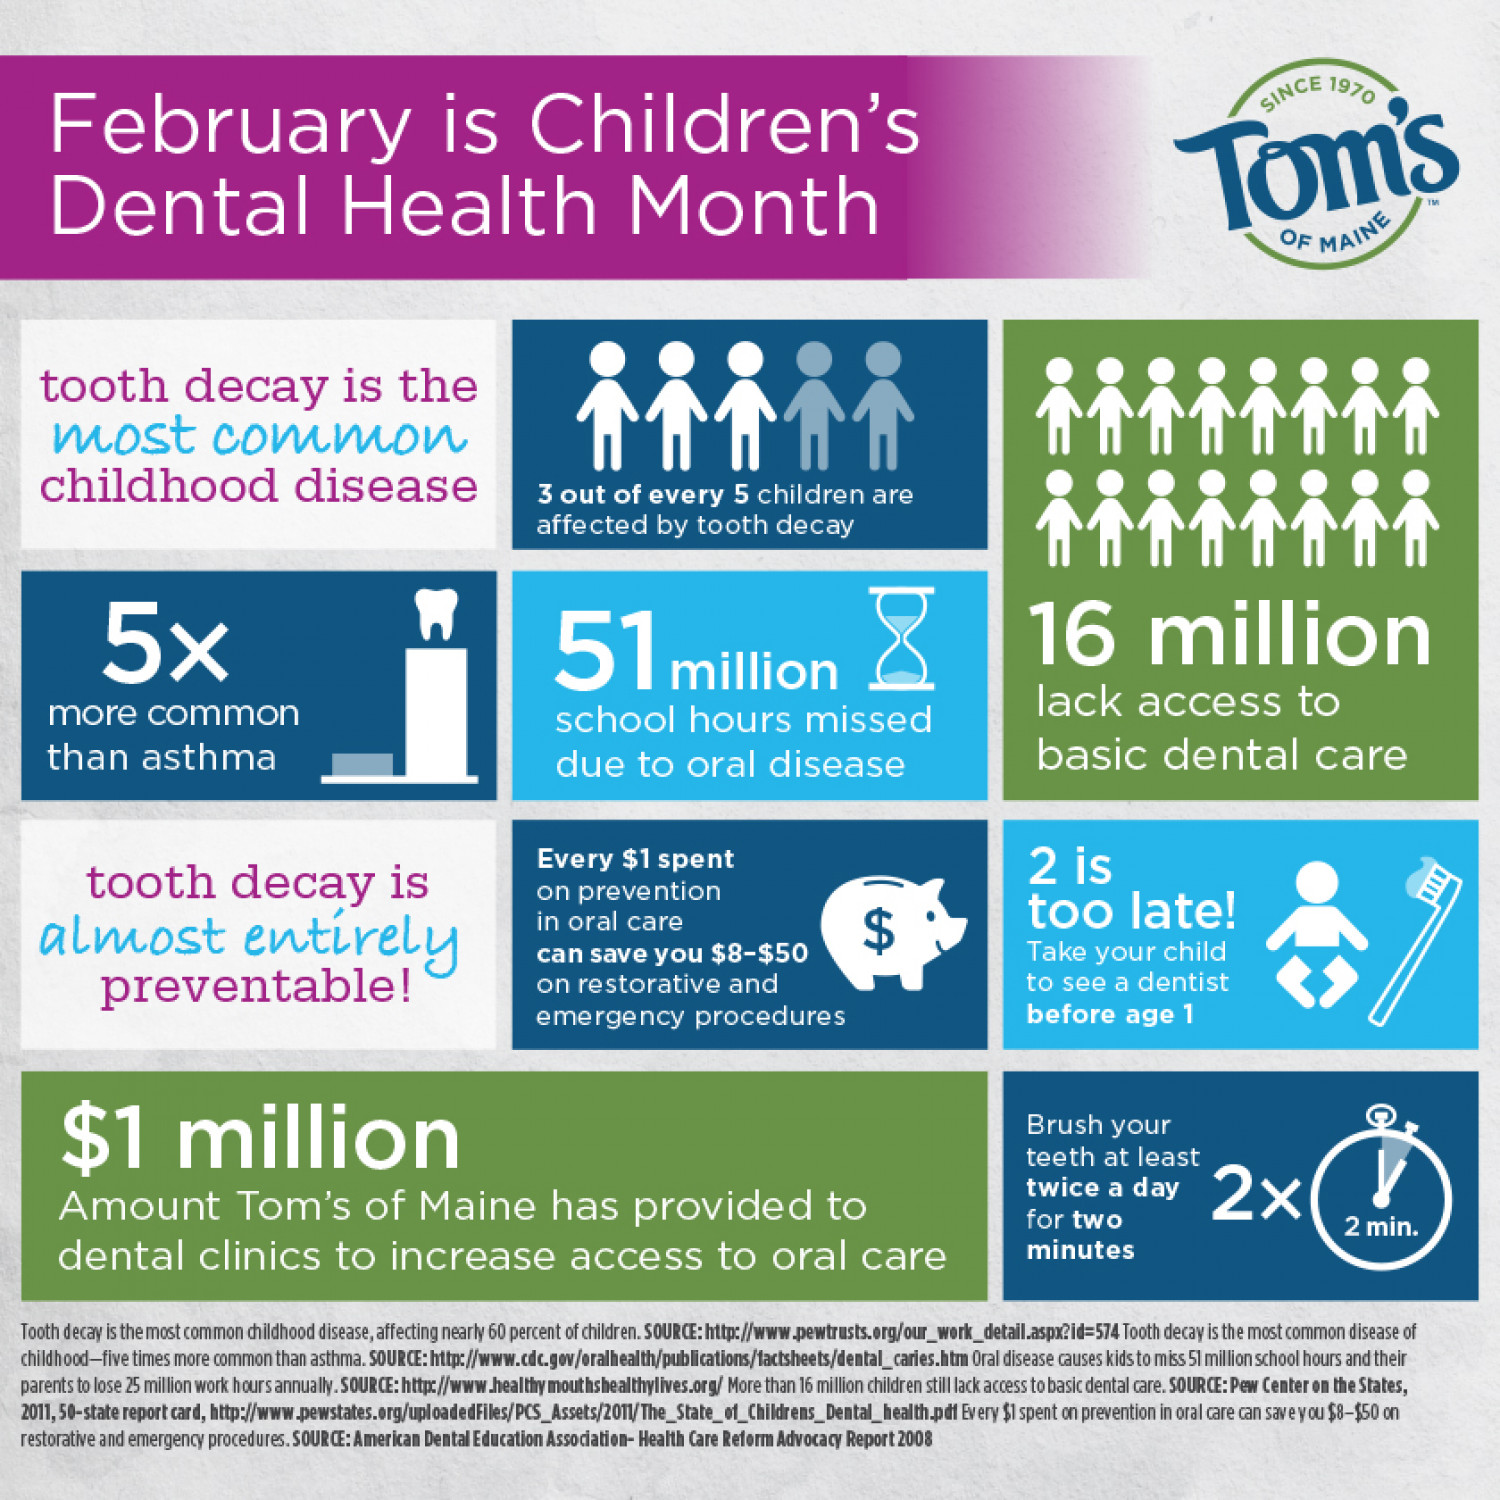 February is Children's Dental Health Month Infographic